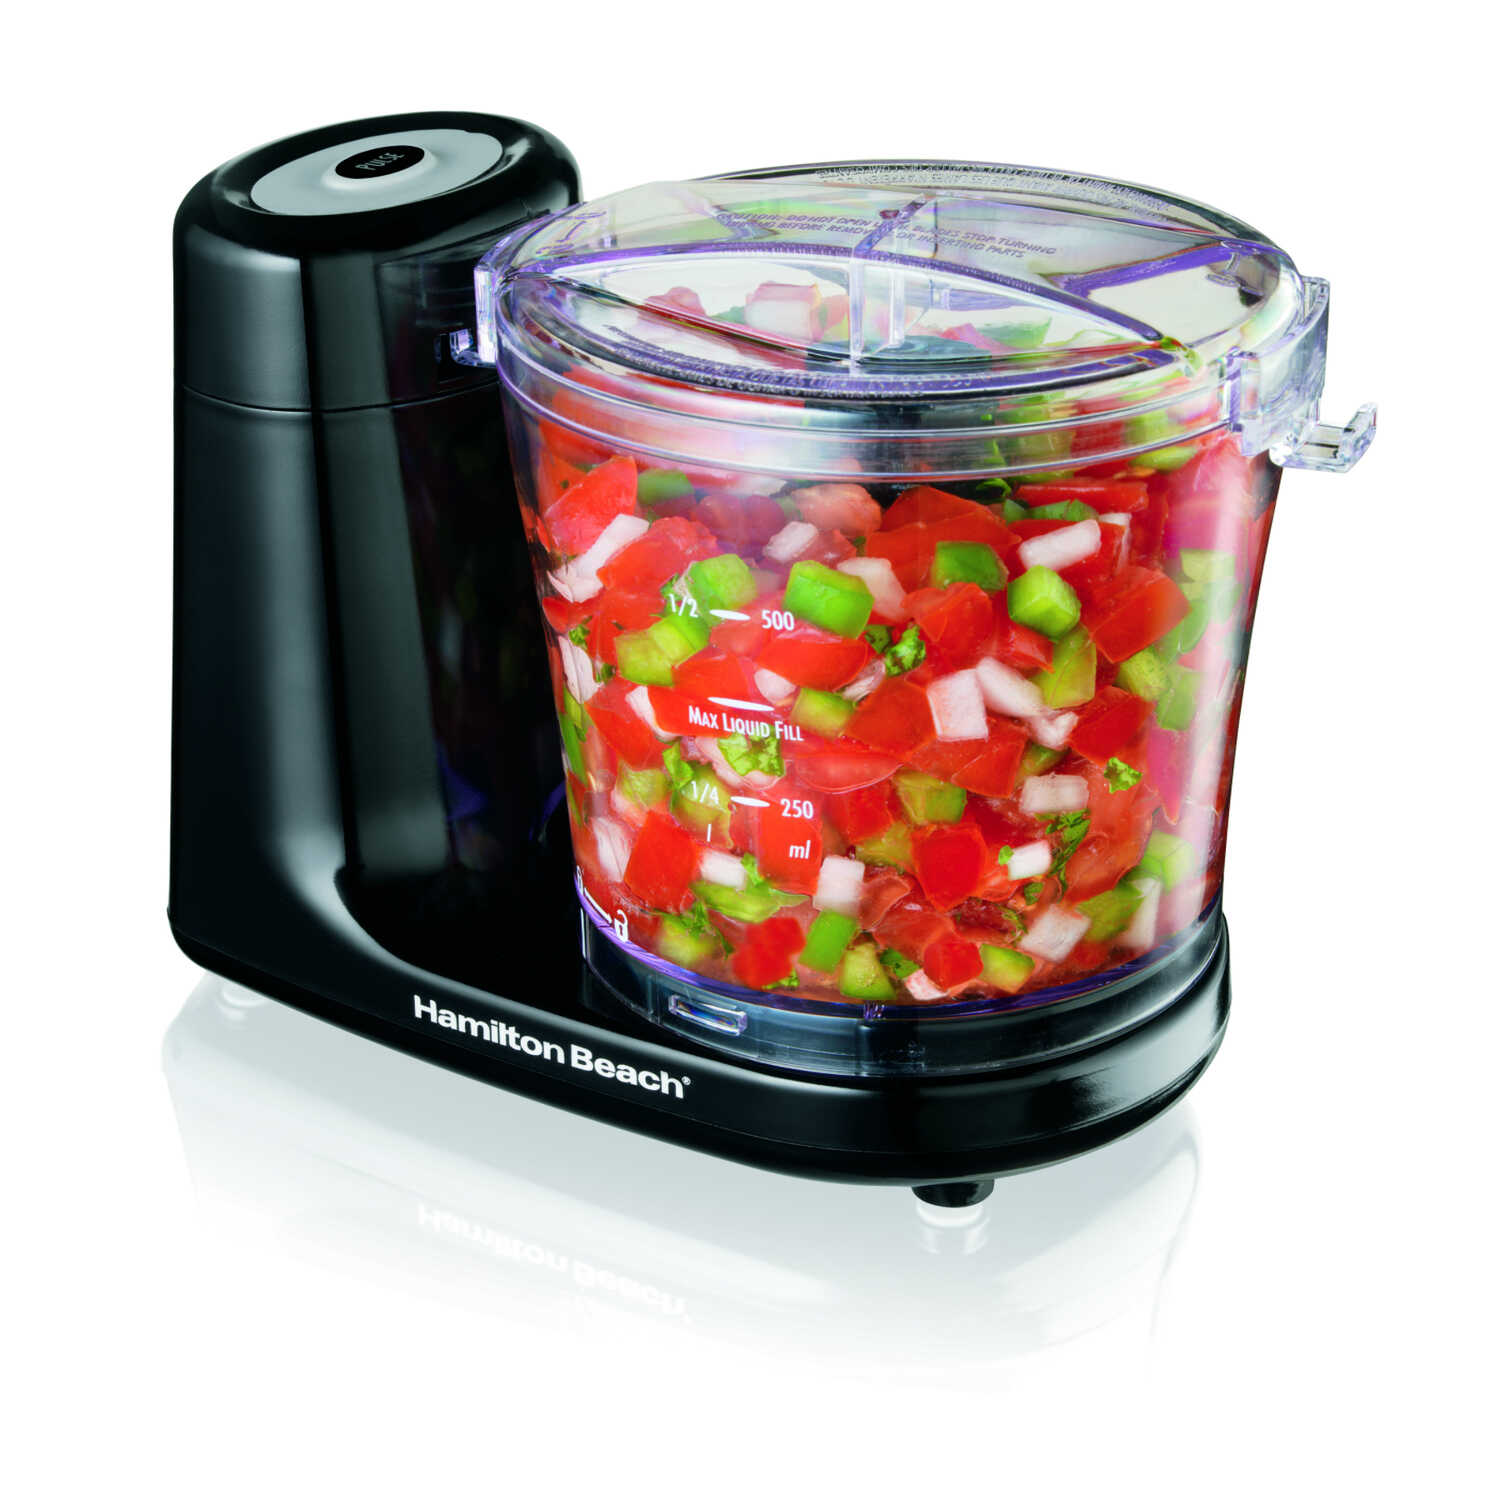 Hamilton Beach  Black  3 cups Food Chopper  80 watts